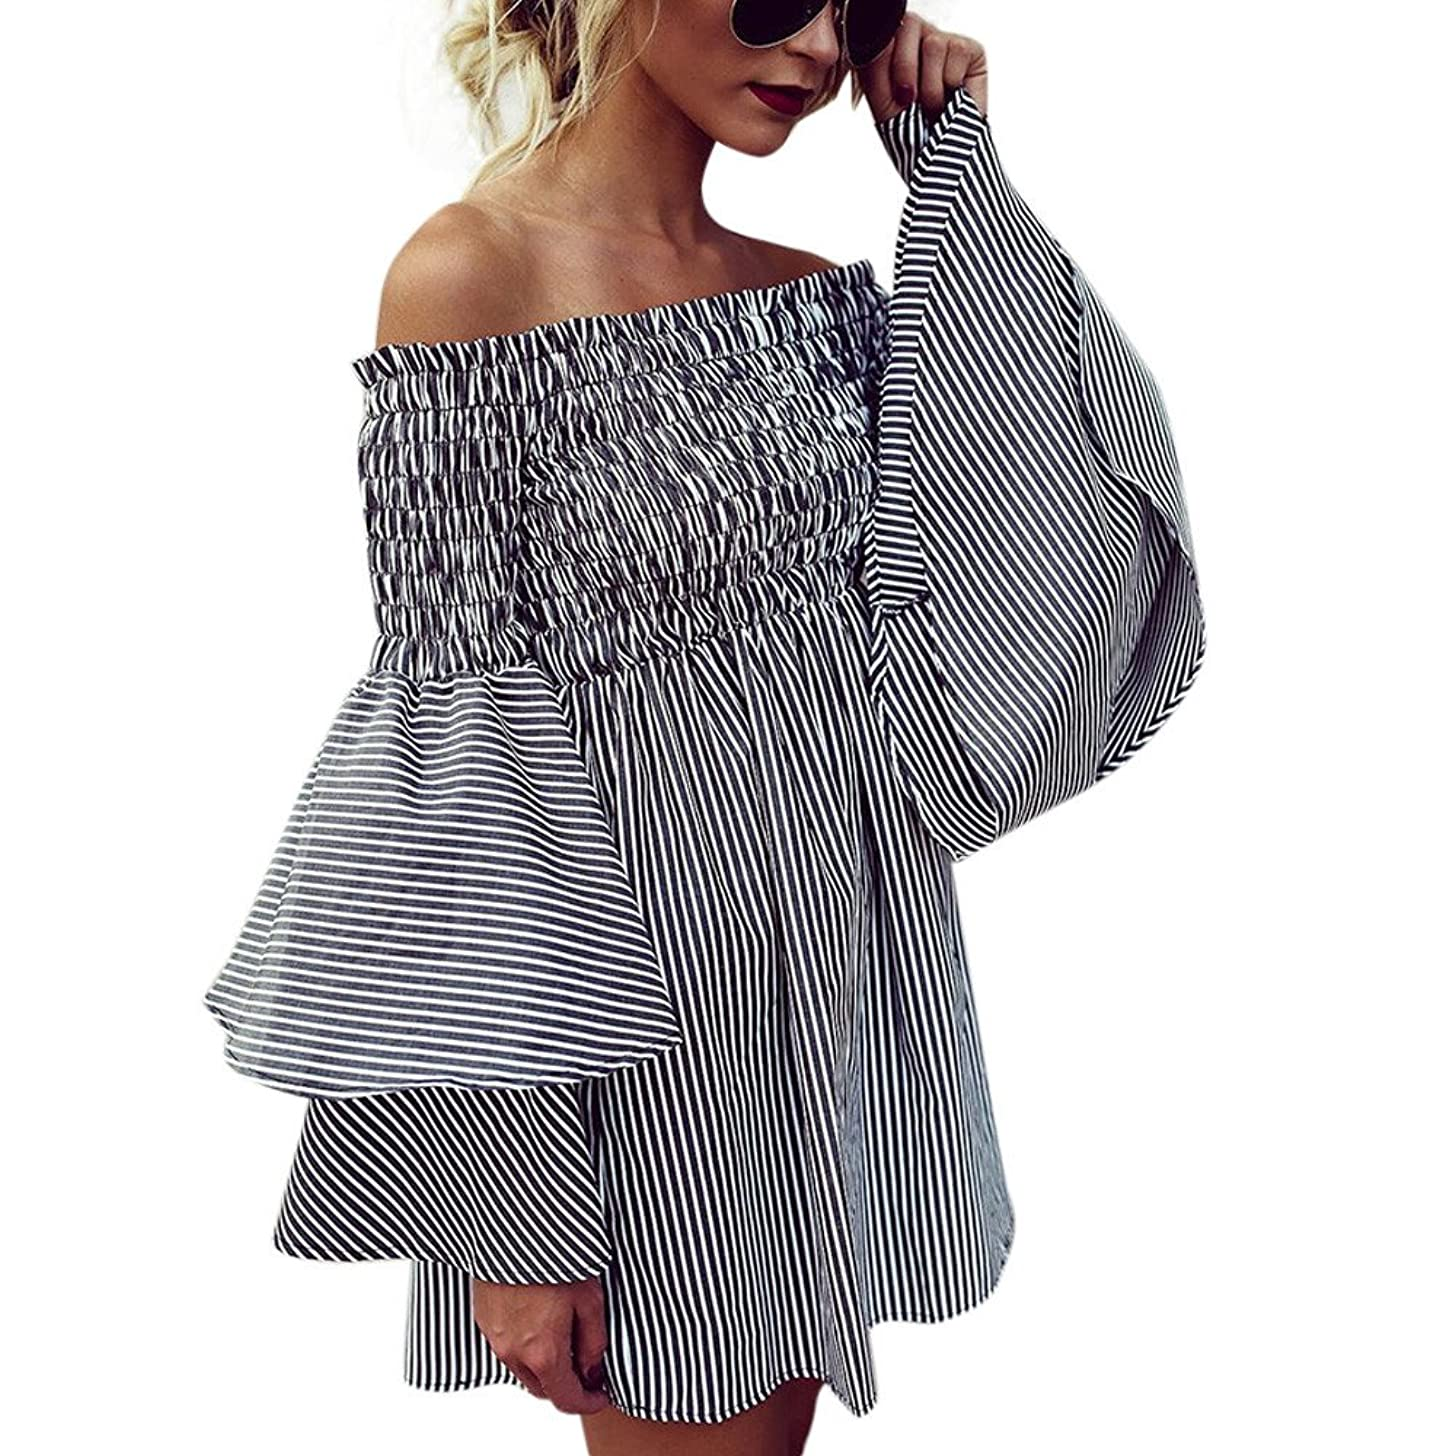 Gerichy Women Off Shoulder Striped Ruffles Mini Dress Casual Holiday Beach Sexy Mini Party Dress